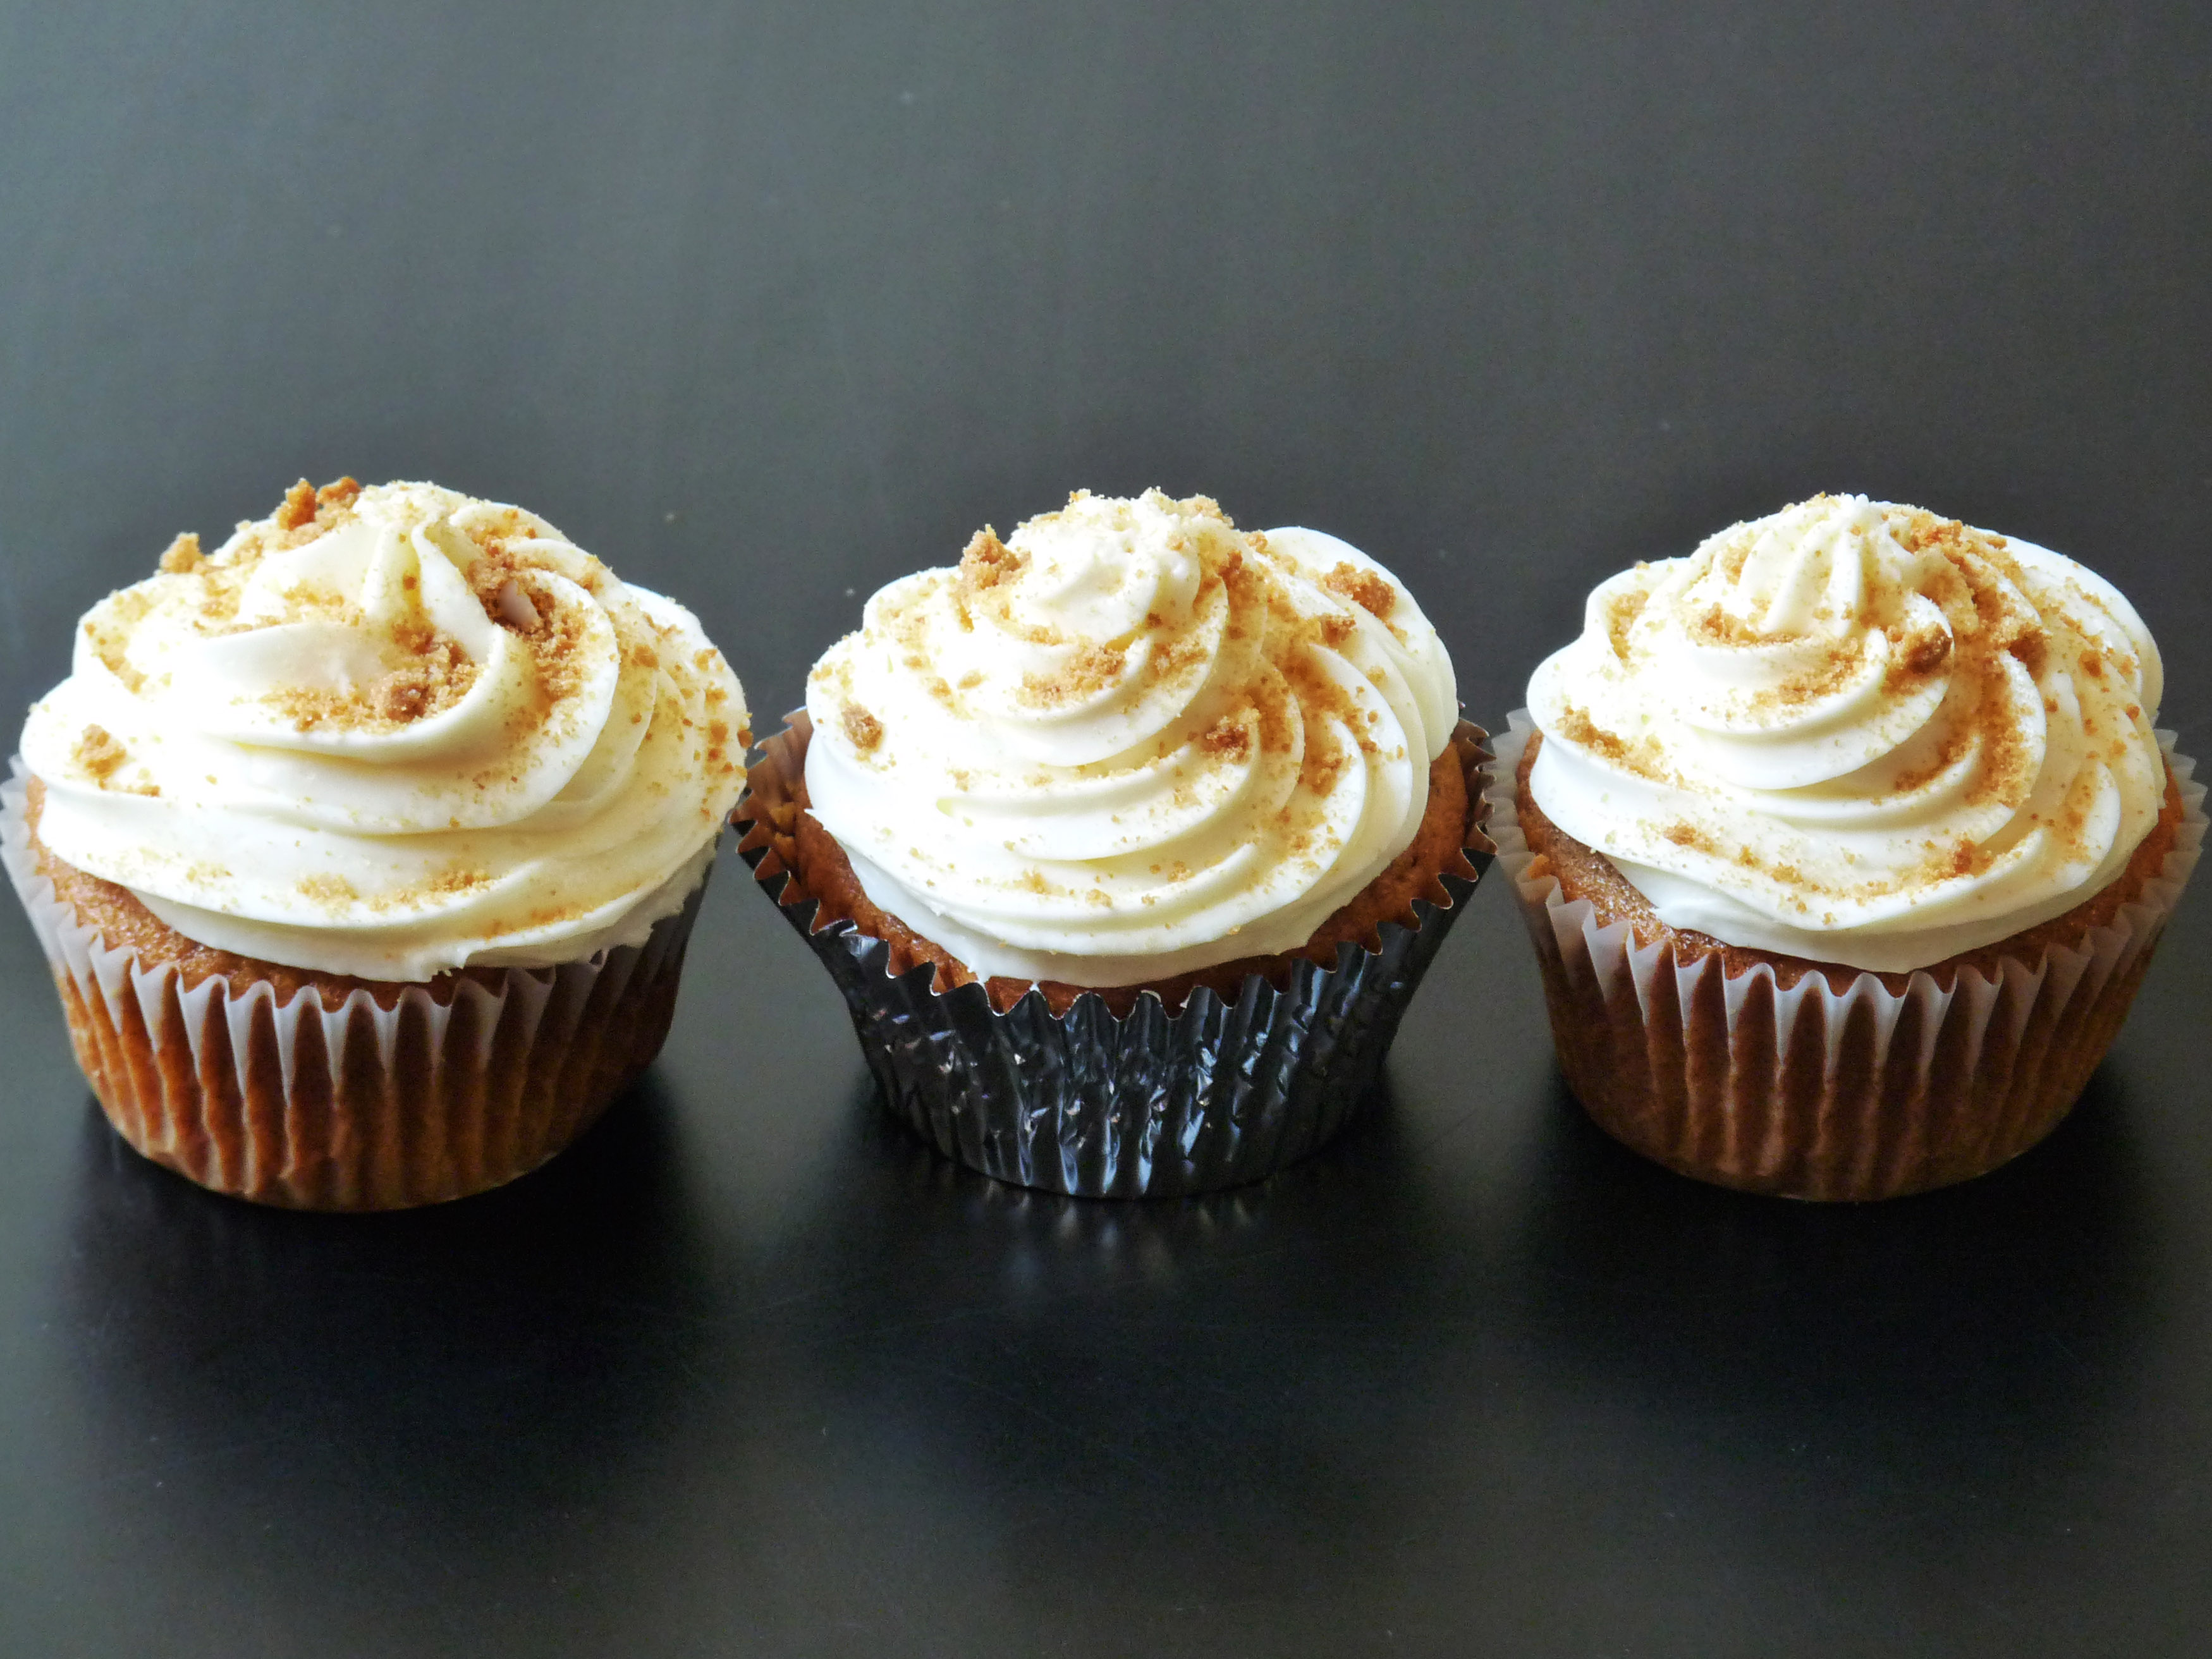 Cucina Fresca Meaning Pumpkin Cupcakes With Cream Cheese Frosting Cucina Fresca